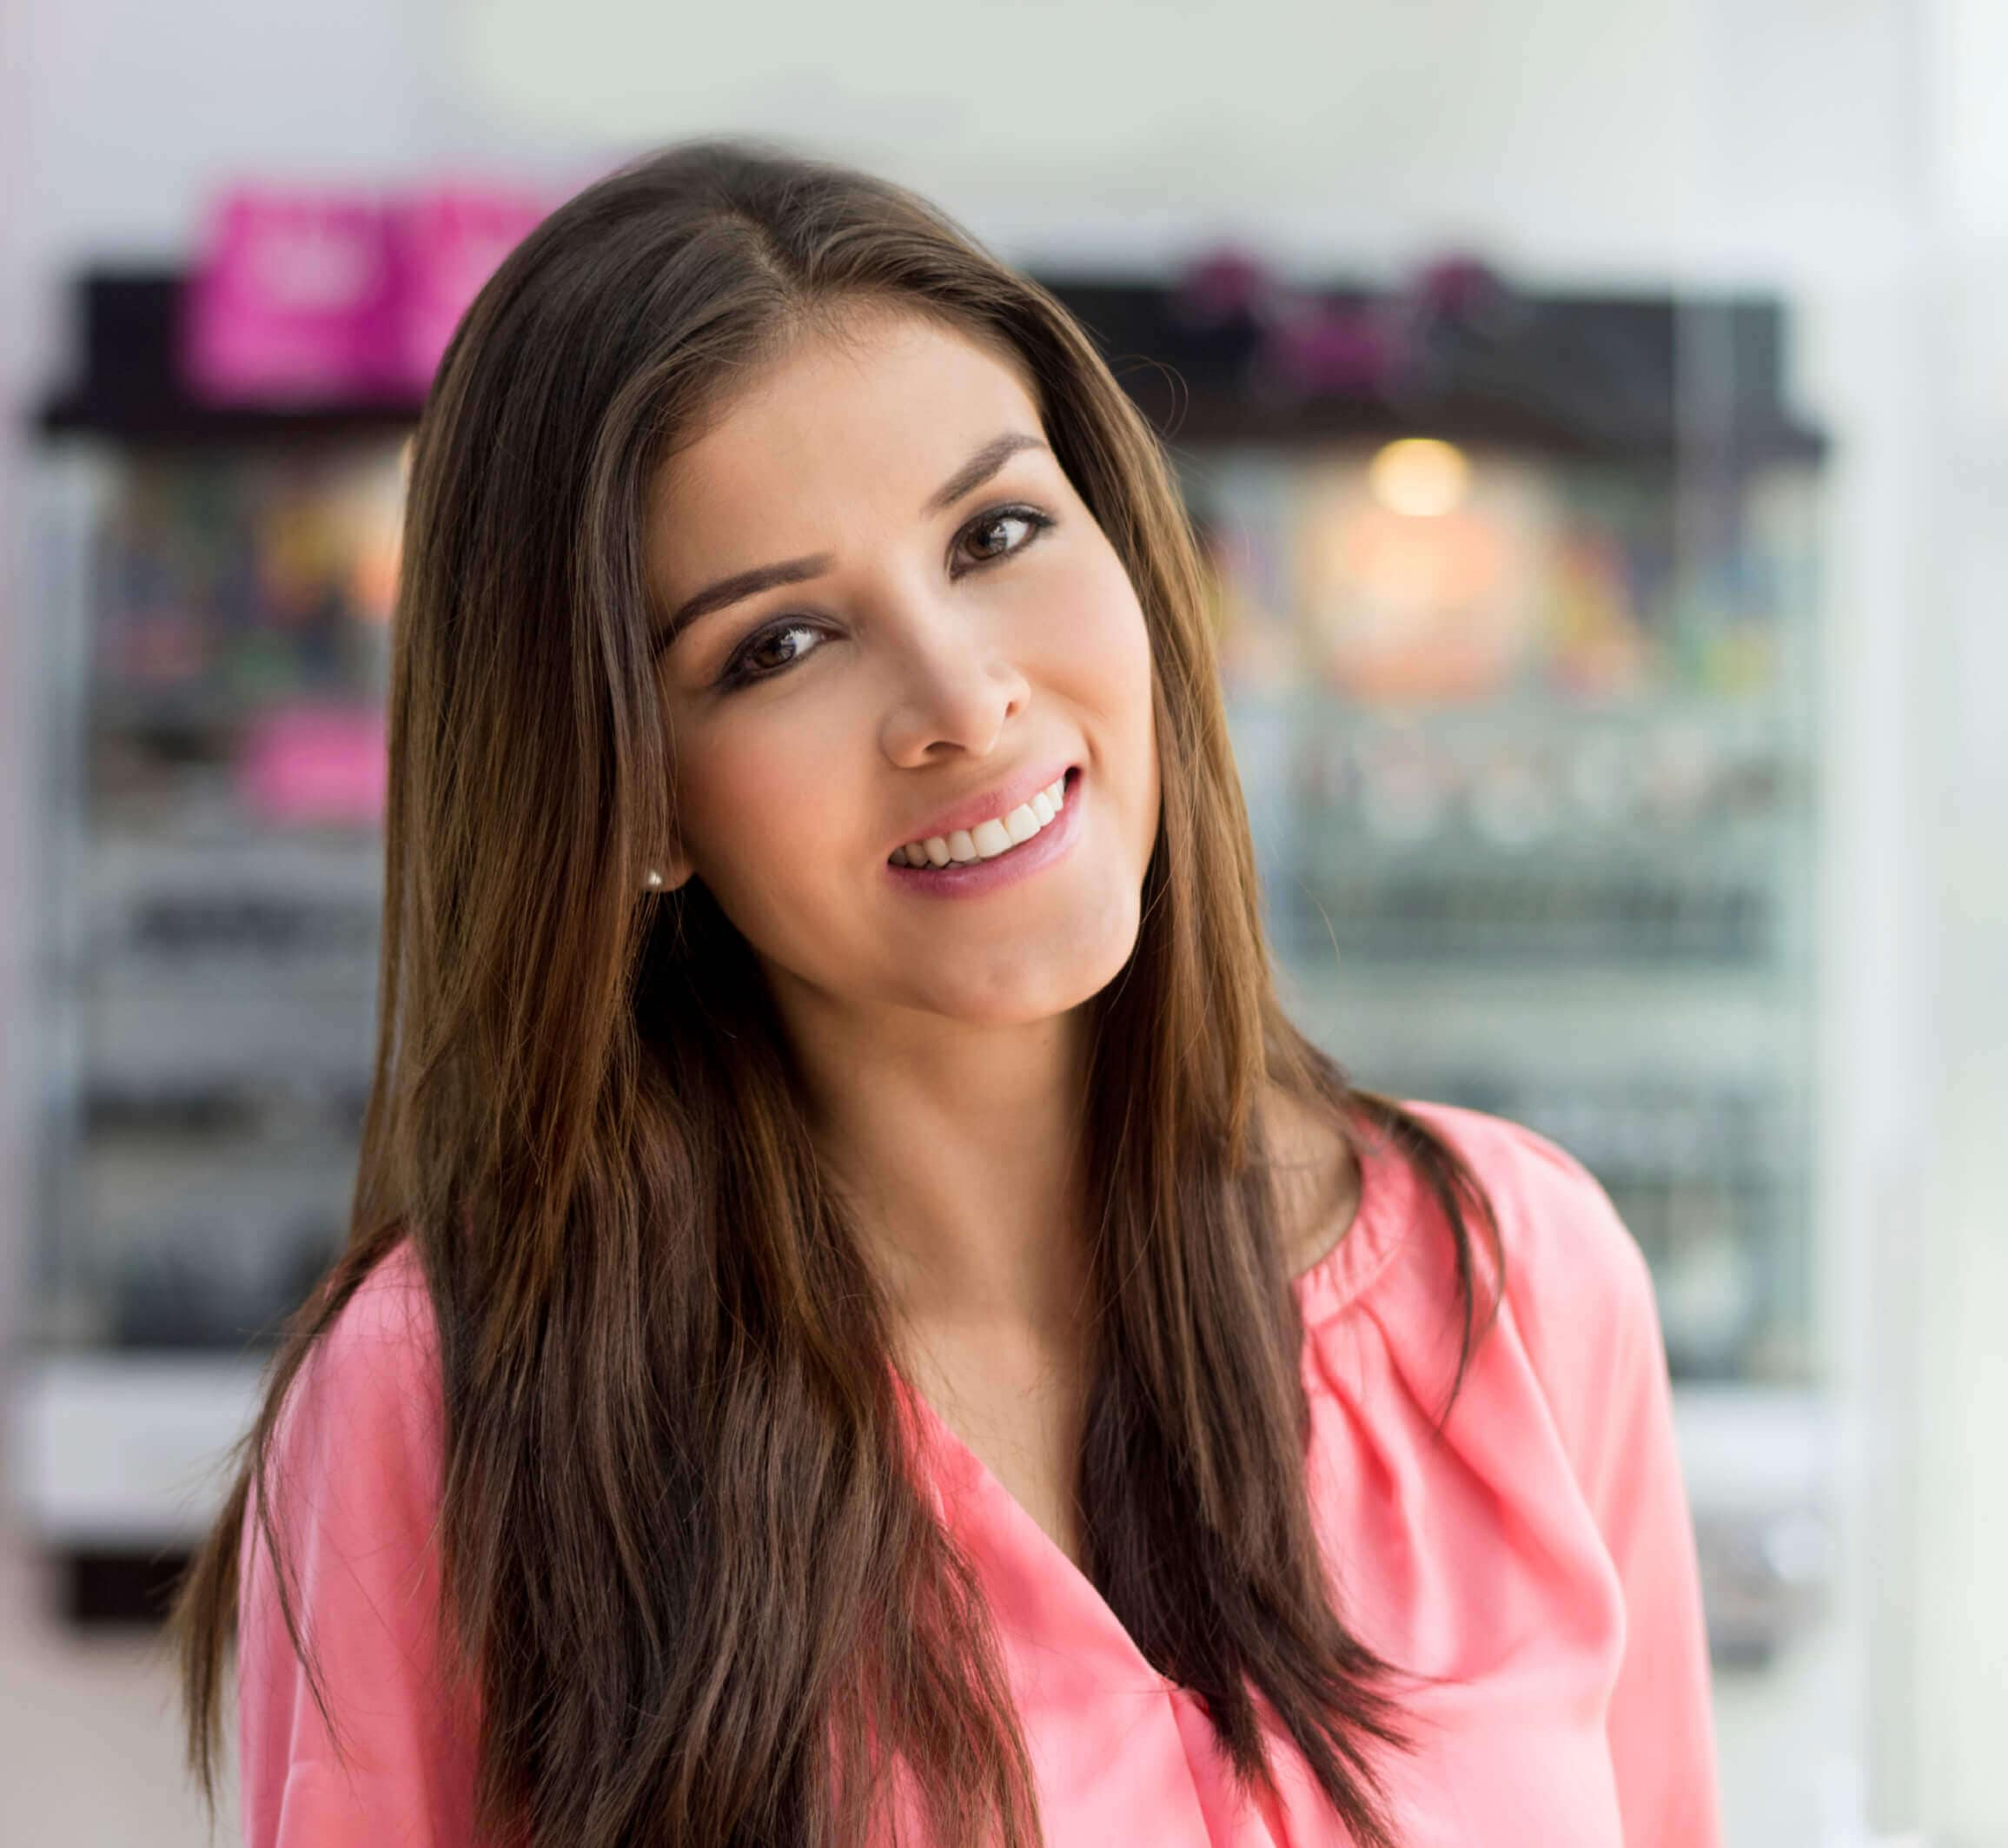 Chestnut Brown Hair: Why We Love This Hue for the Holidays Chestnut Brown Hair